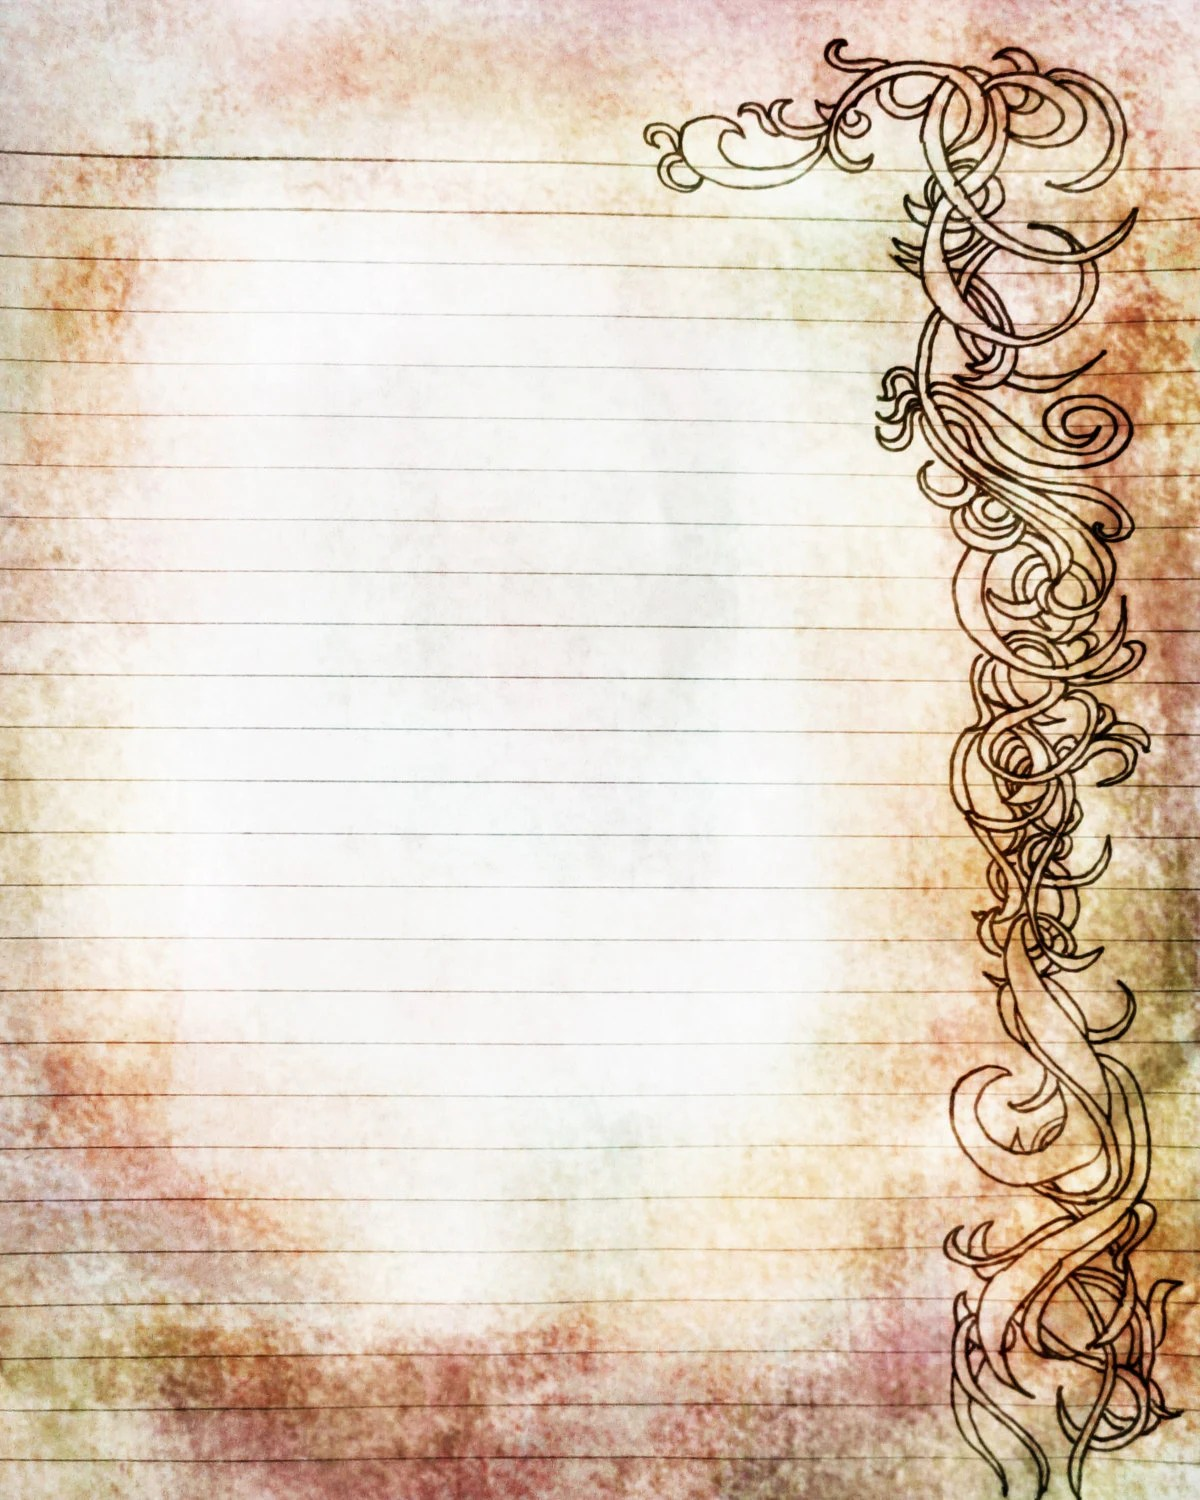 Printable Amber and Rose Colored Filigree Lined Journal Page - colored writing paper